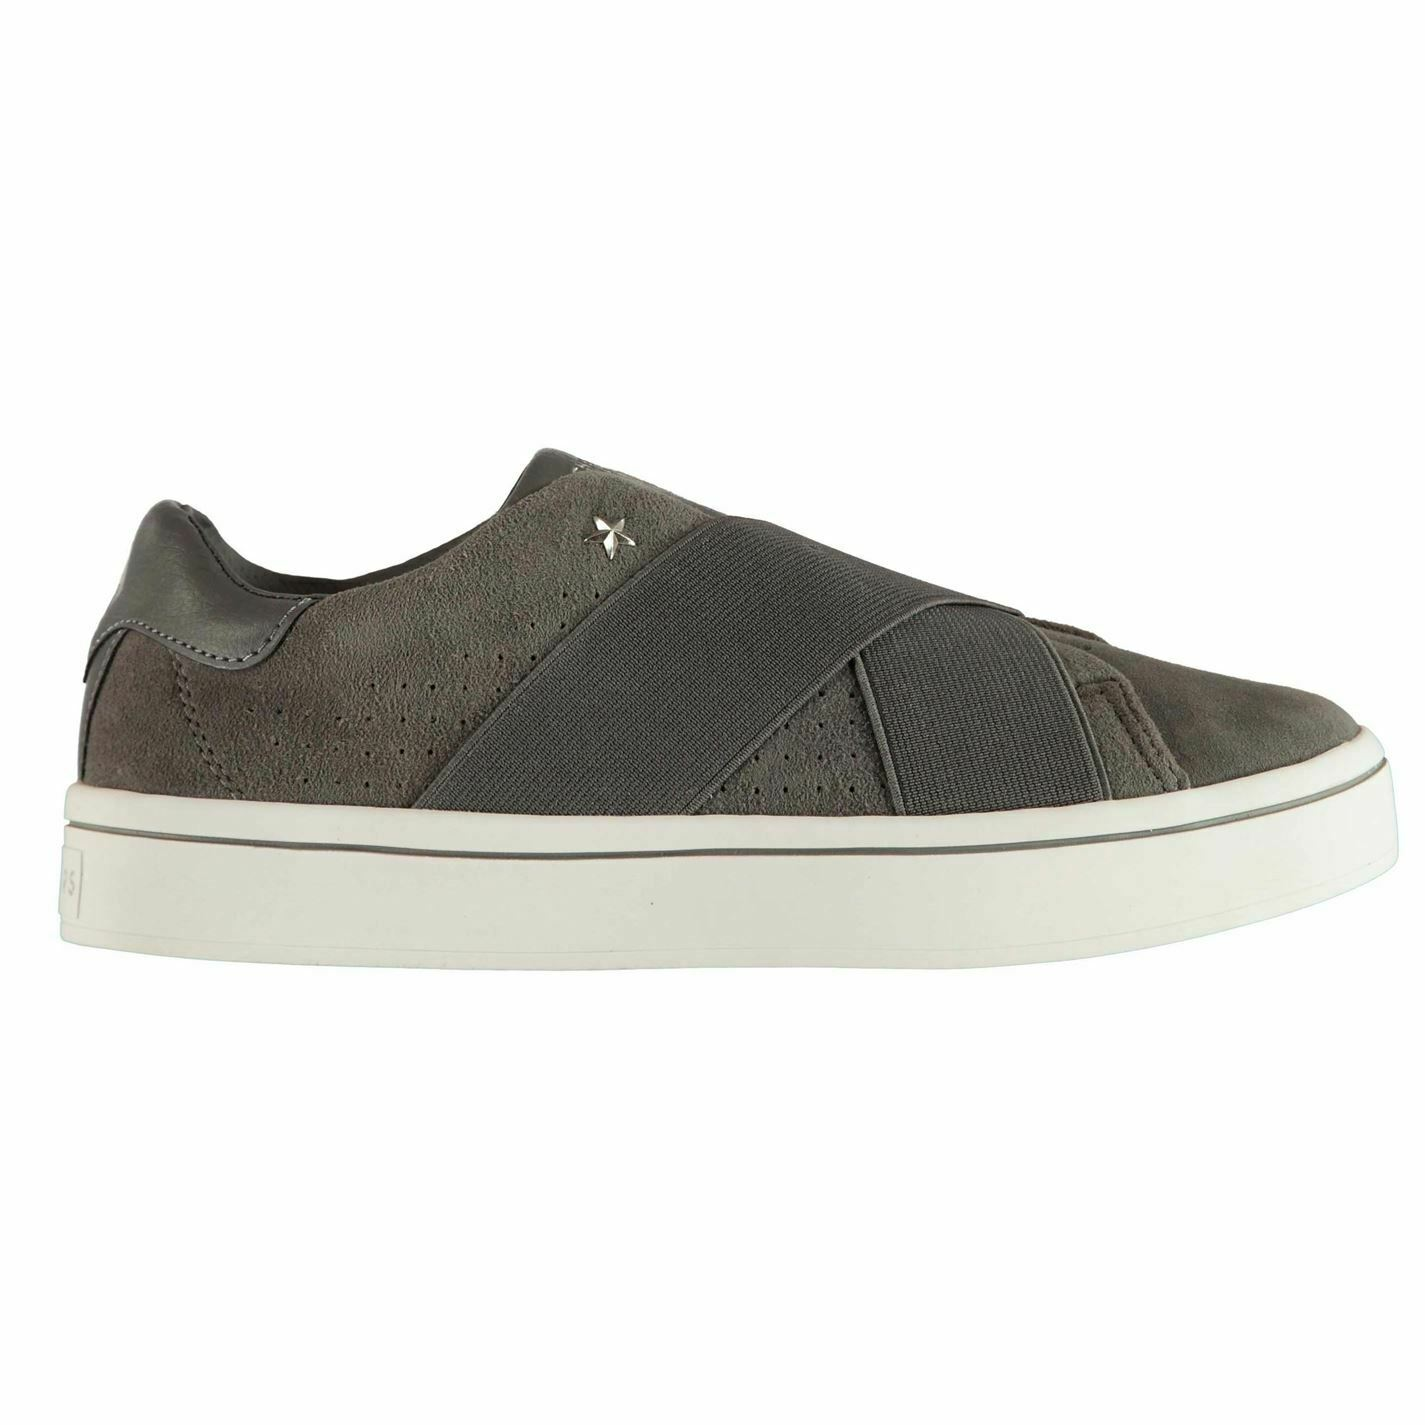 Skechers Womens Hi Street Trainers Suede Padded Ankle Collar Strap Leather Upper